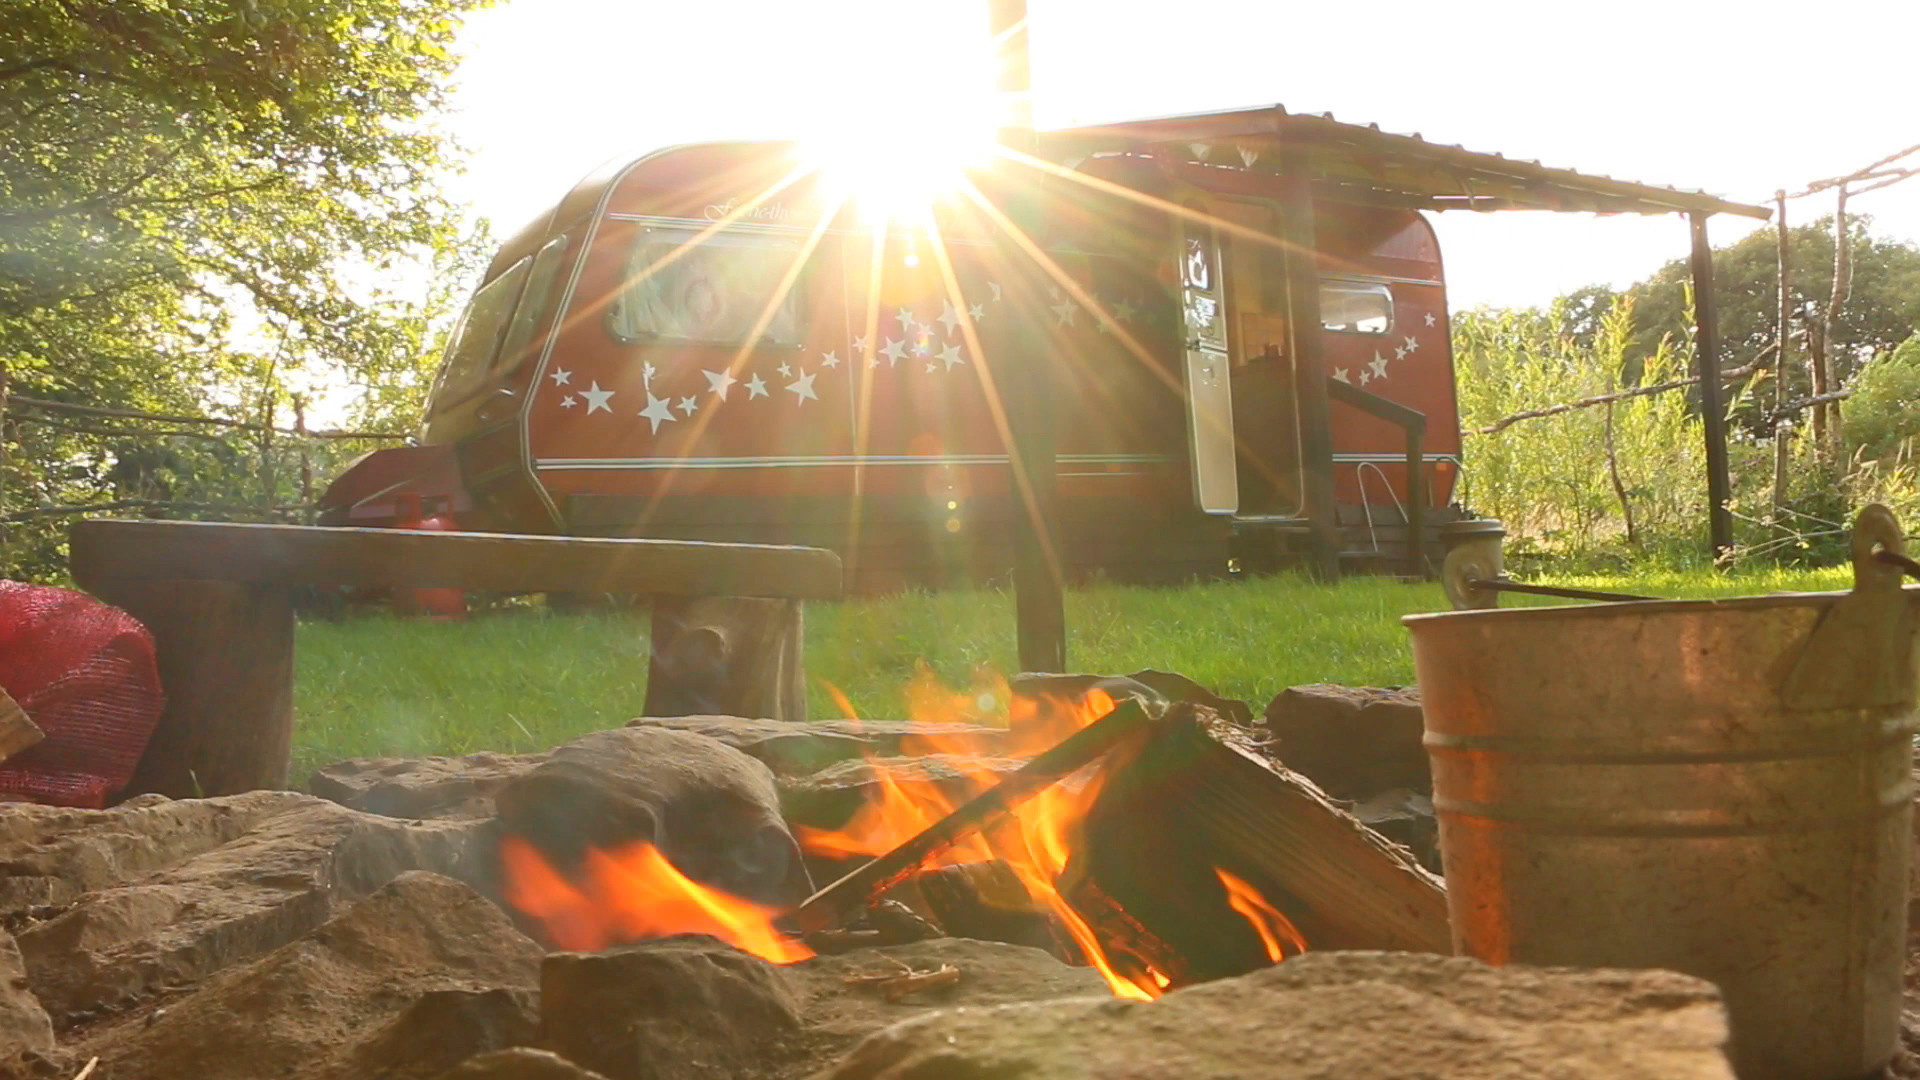 Recommended Campground For Campervans